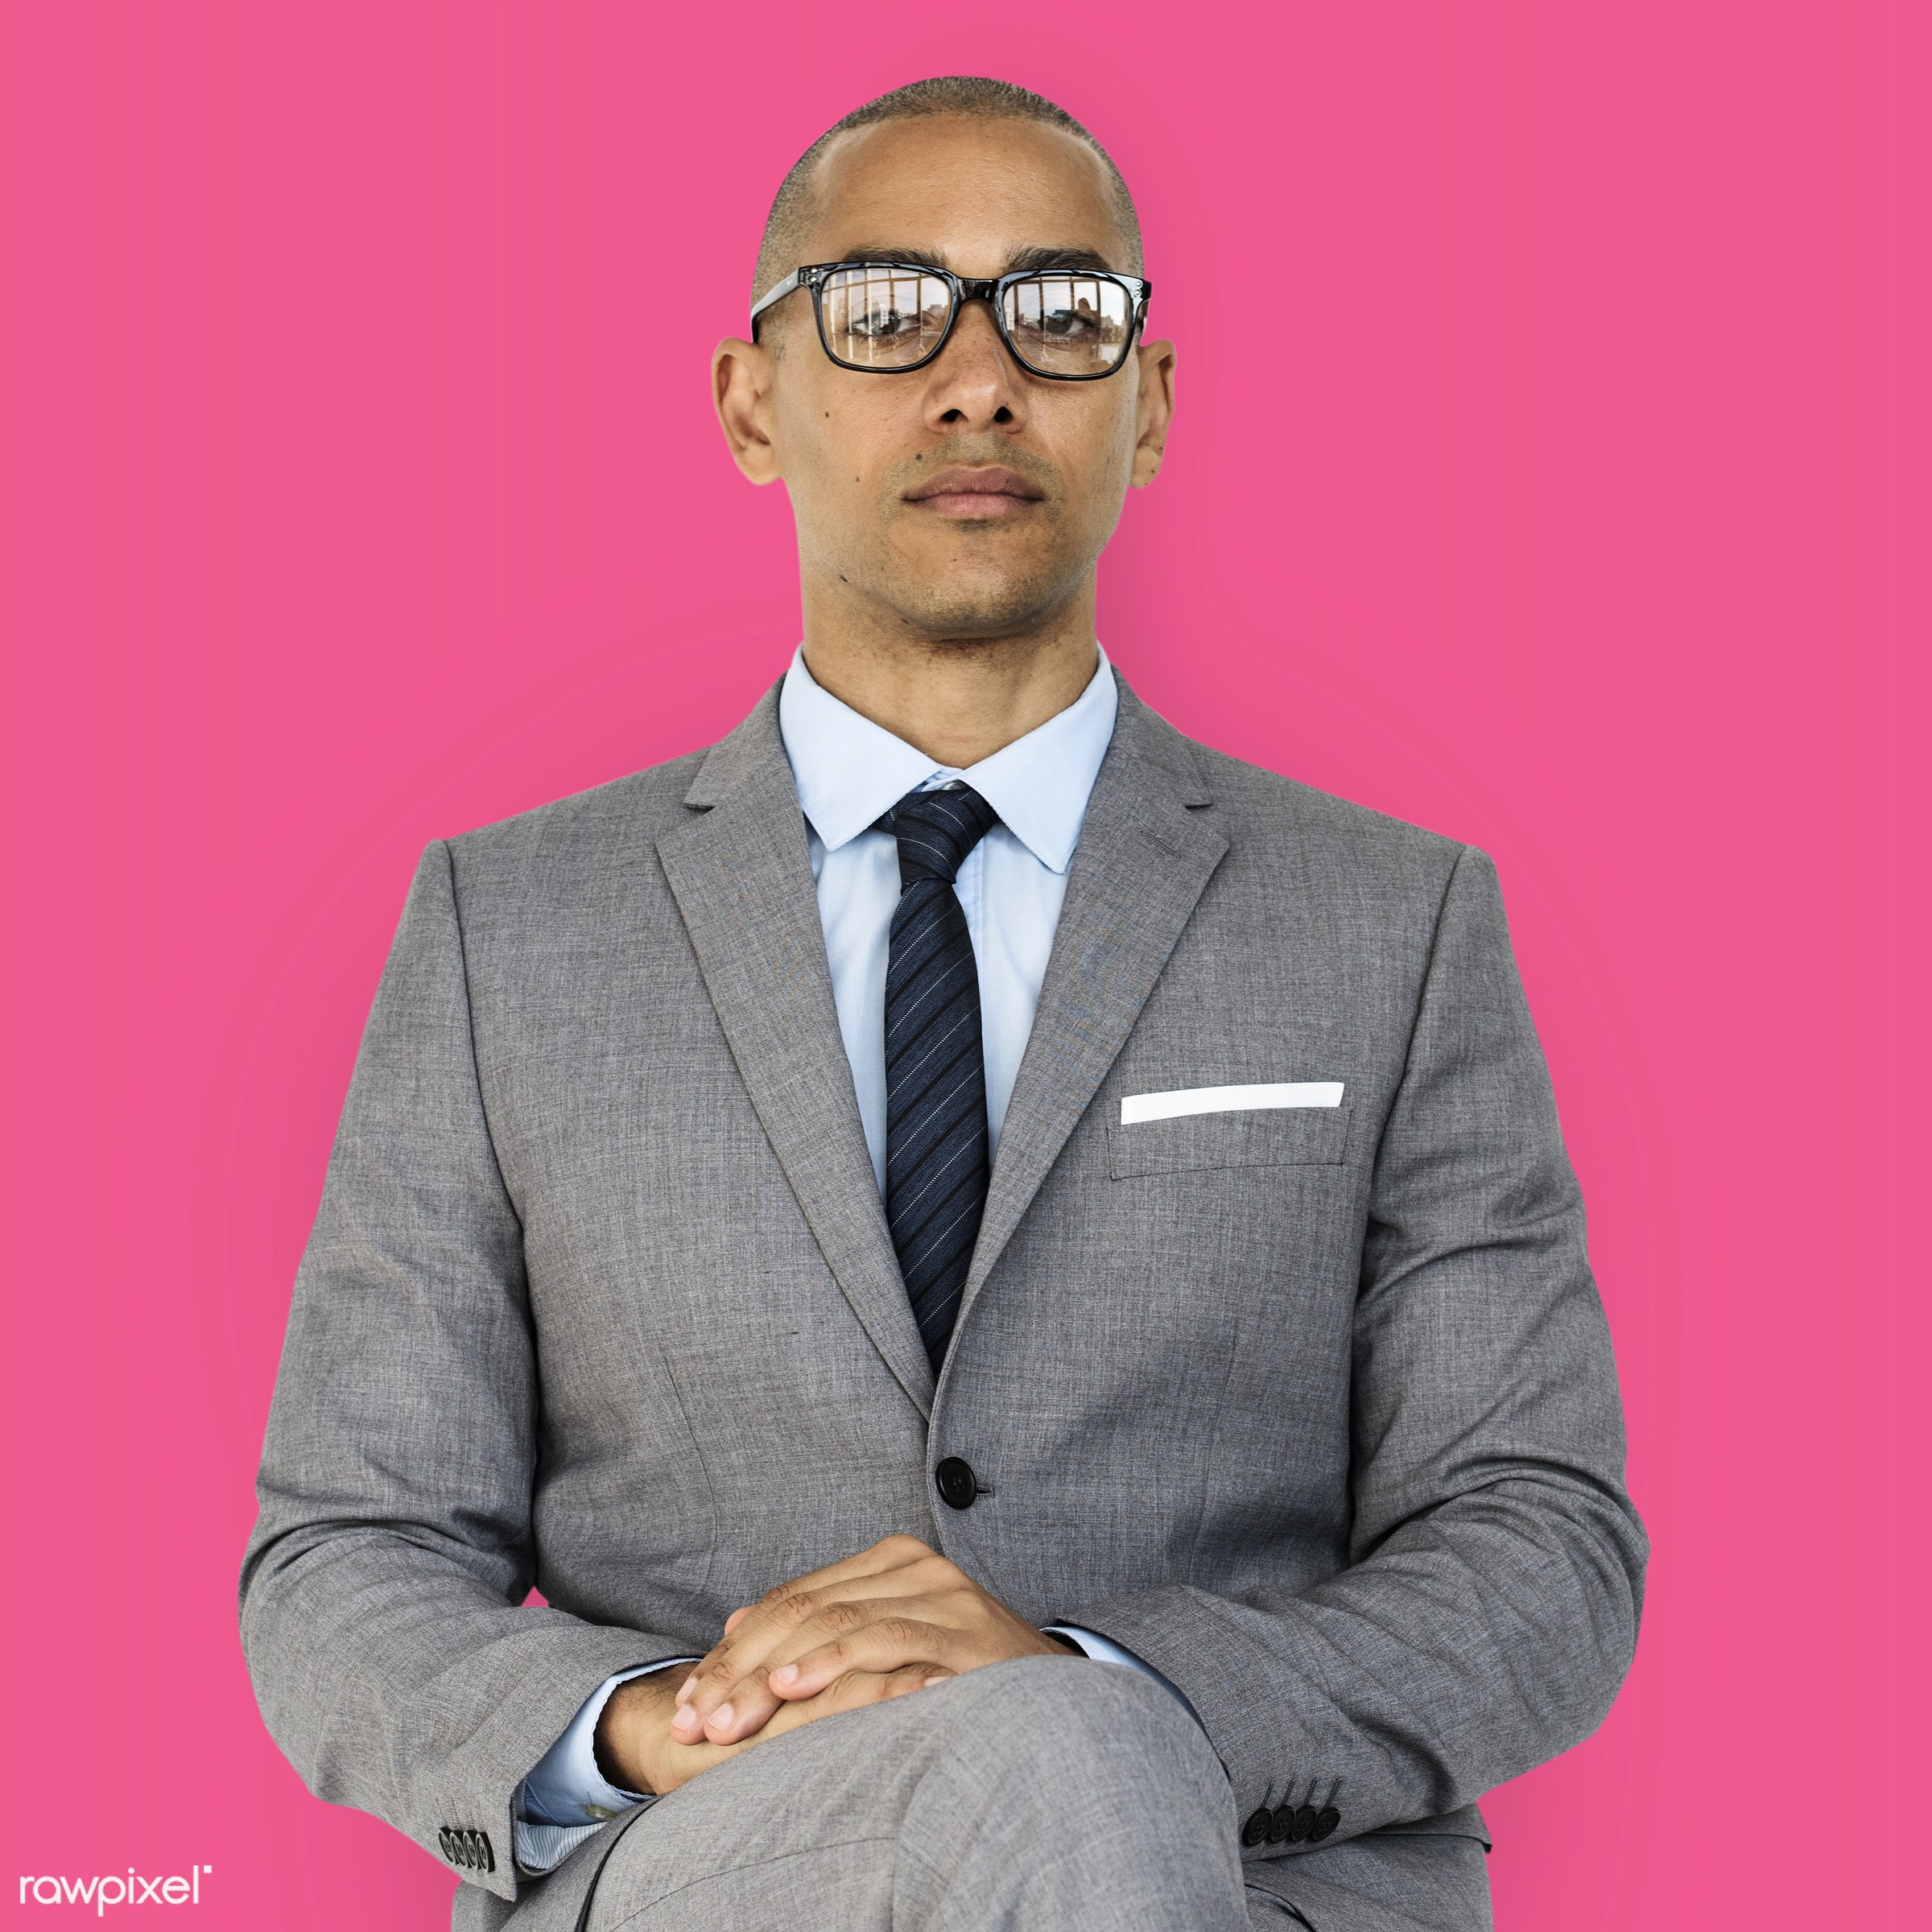 expression, studio, face, person, glasses, courage, carefree, people, business, businessman, fresh, casual, pink, mixed race...